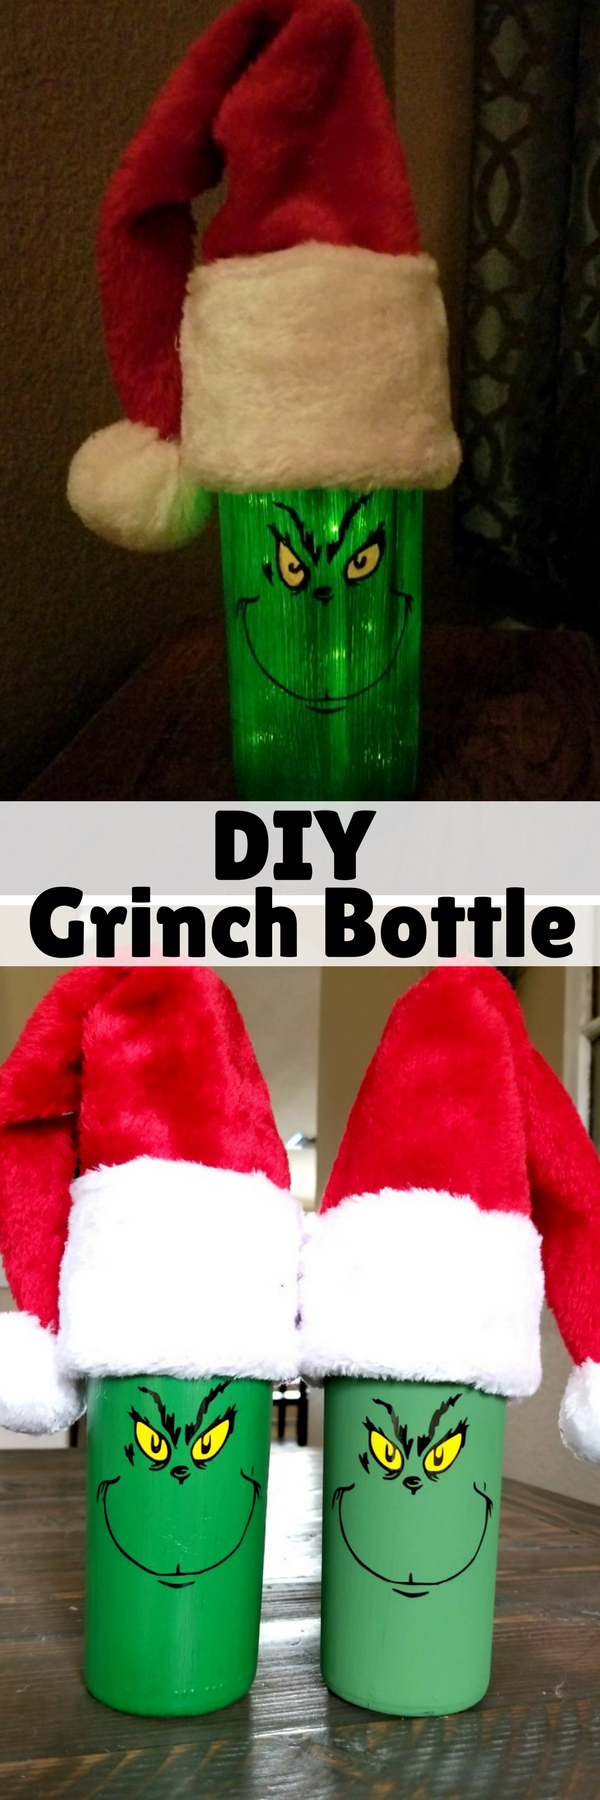 Painted Grinch Christmas wine bottles